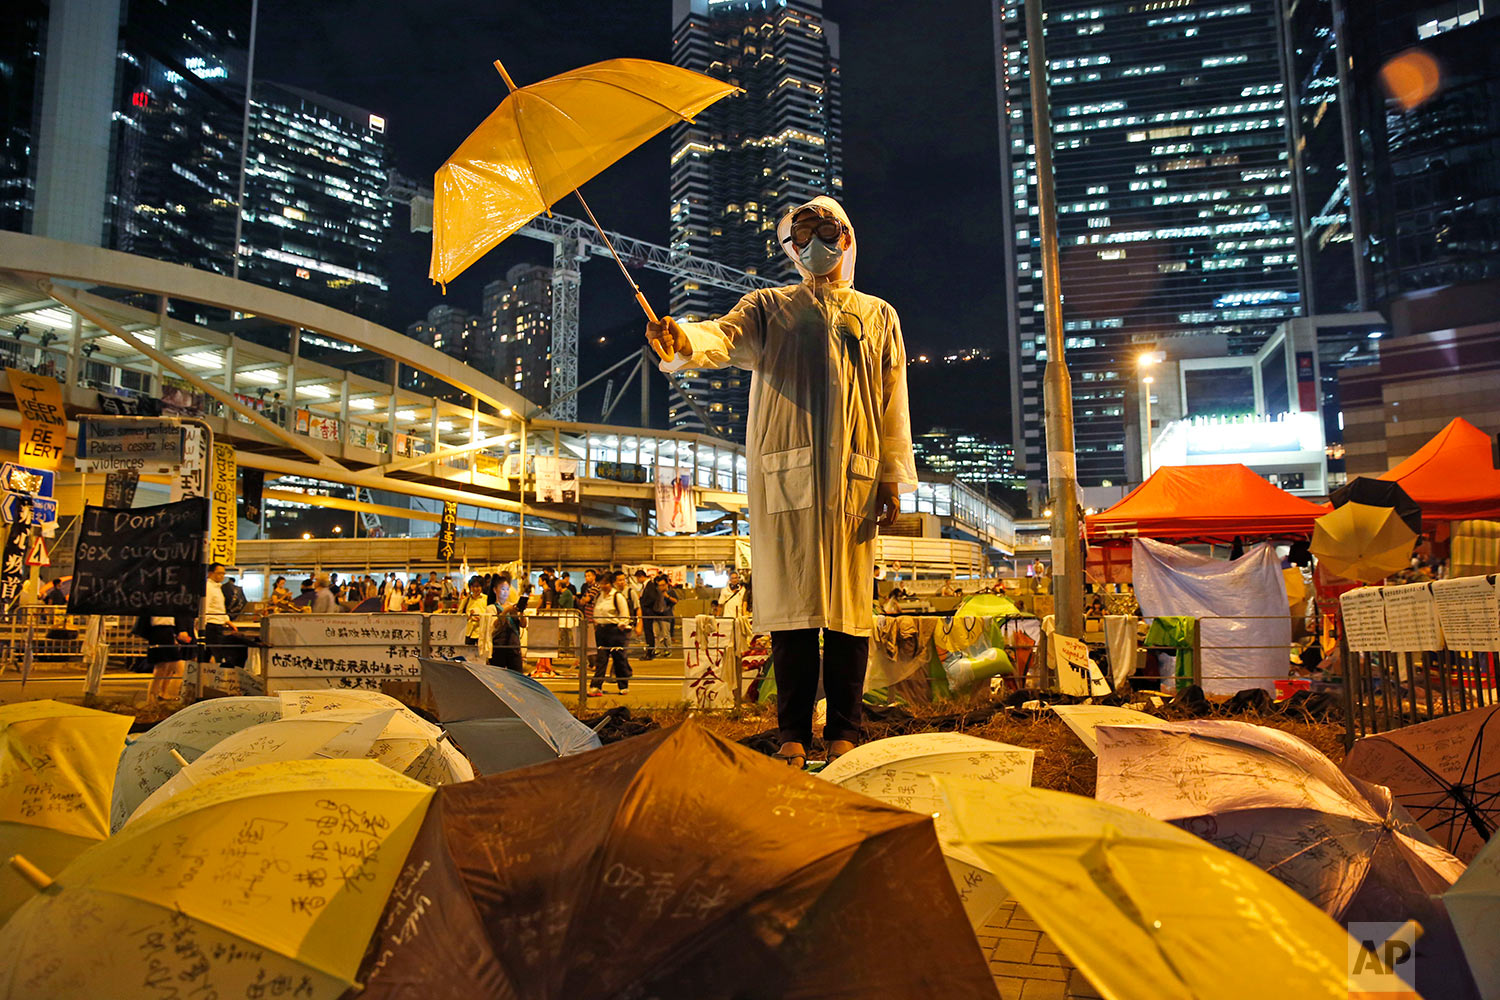 A protester holds an umbrella during a performance on a main road in the occupied areas outside government headquarters in Hong Kong's Admiralty, Oct. 9, 2014. (AP Photo/Kin Cheung)